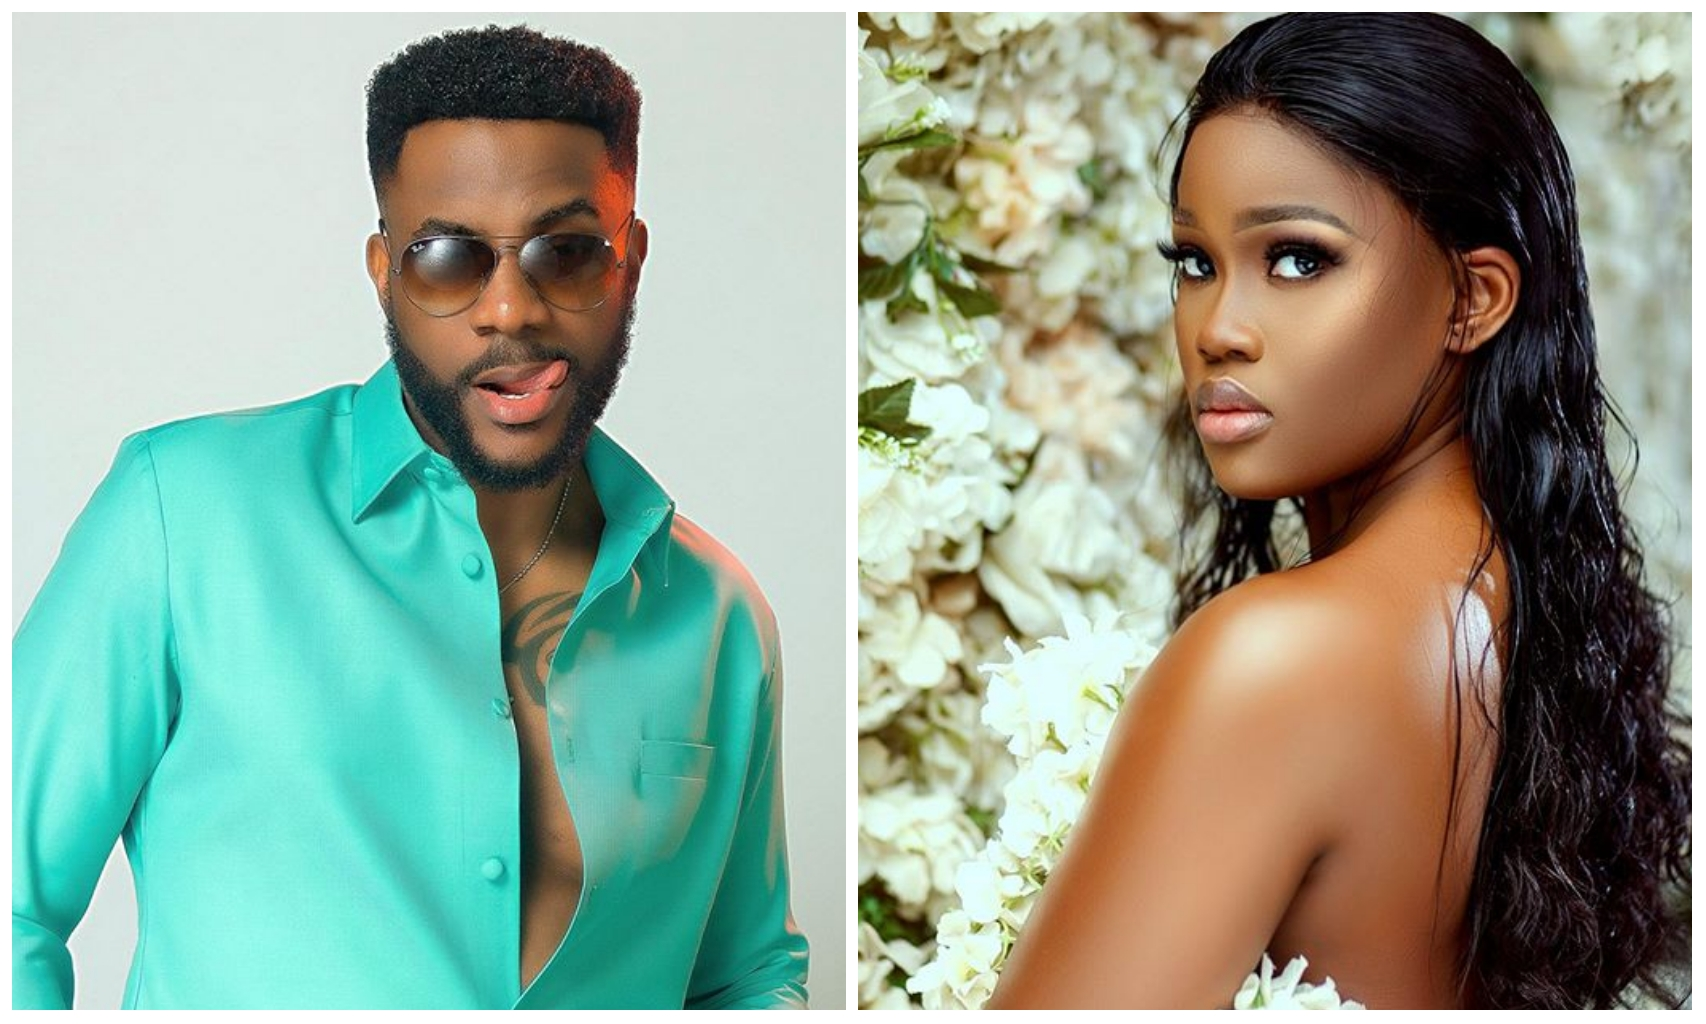 BBNaija: Cee-C denies being Ebuka's ex, says she can't date and let him leave